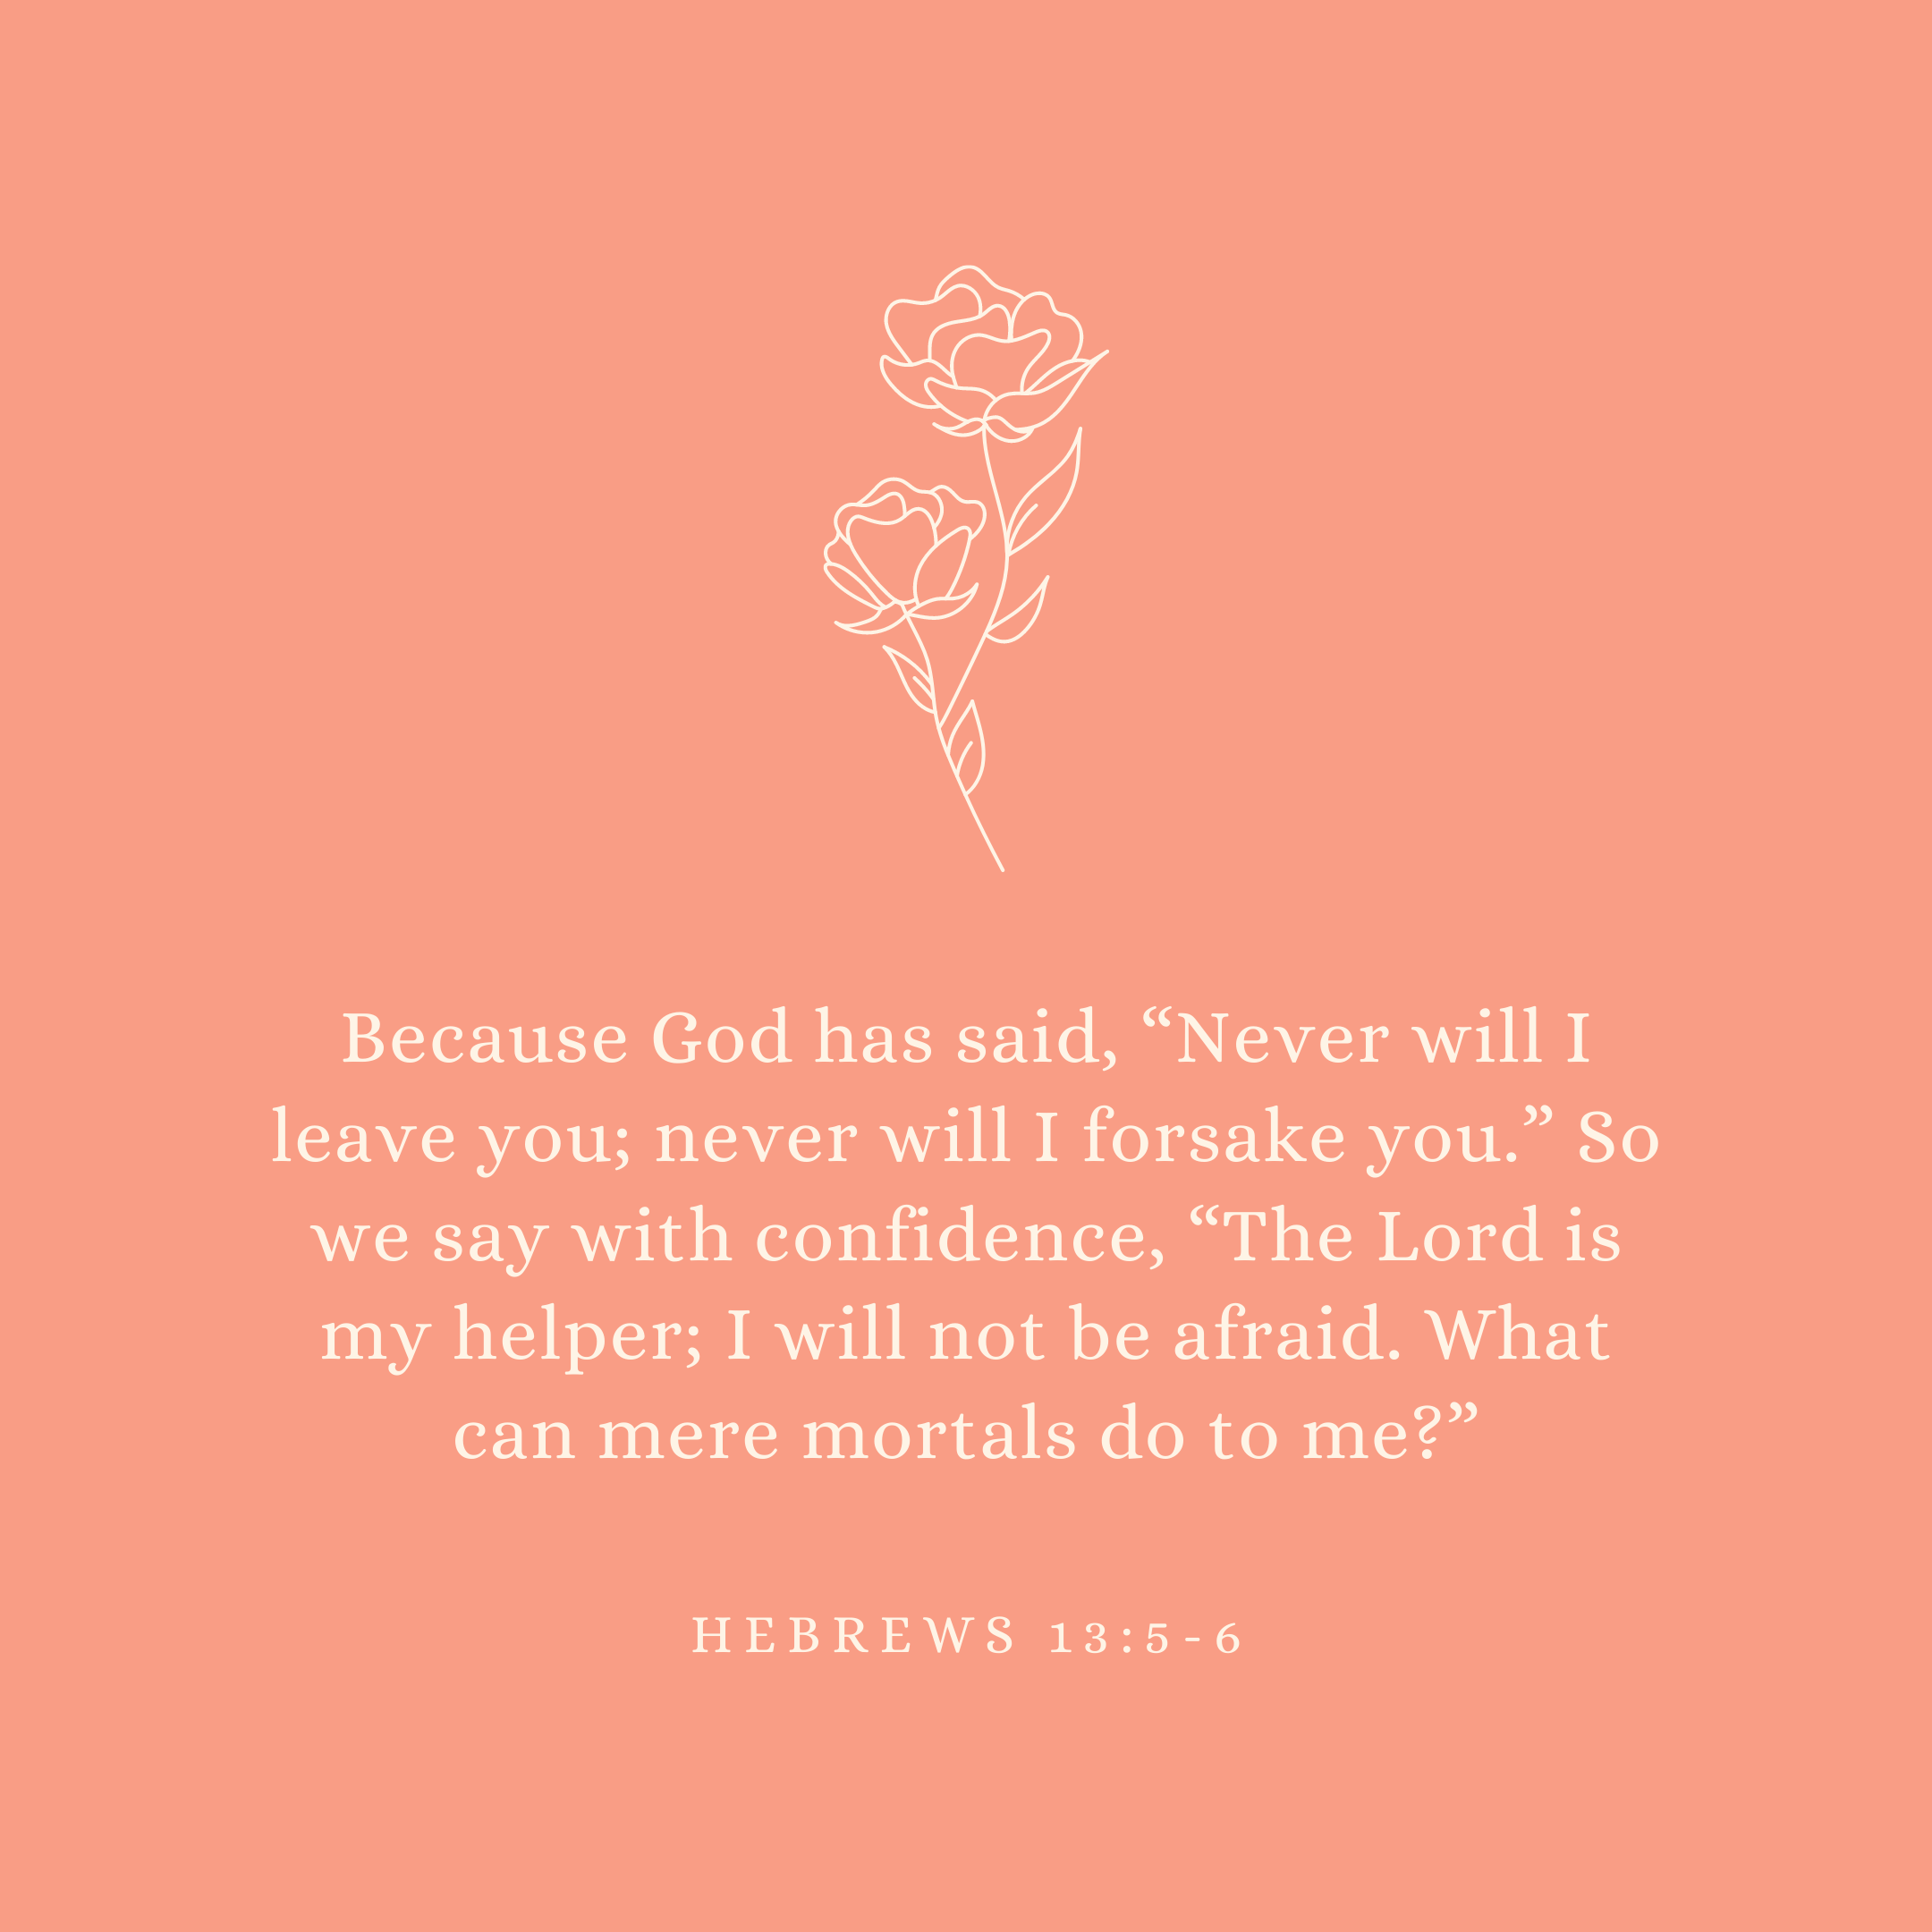 "Hebrews 13:5-6 Because God has said, ""Never will I leave you; never will I forsake you."" So we say with confidence, ""The Lord is my helper; I will not be afraid. What can mere mortals do to me?"""